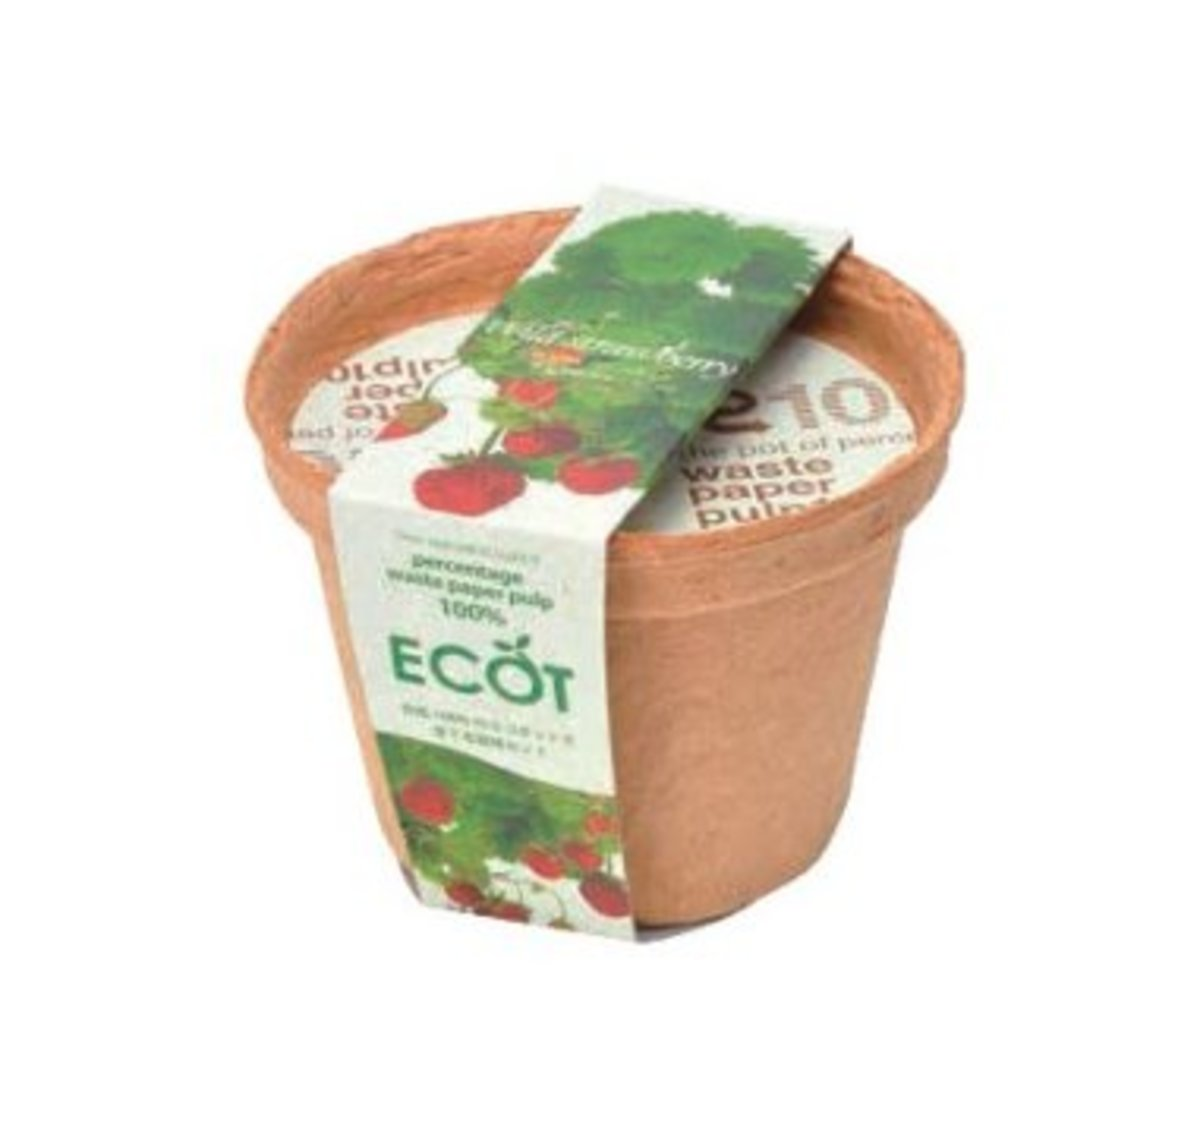 GD-410-05 ECOT small - Strawberry